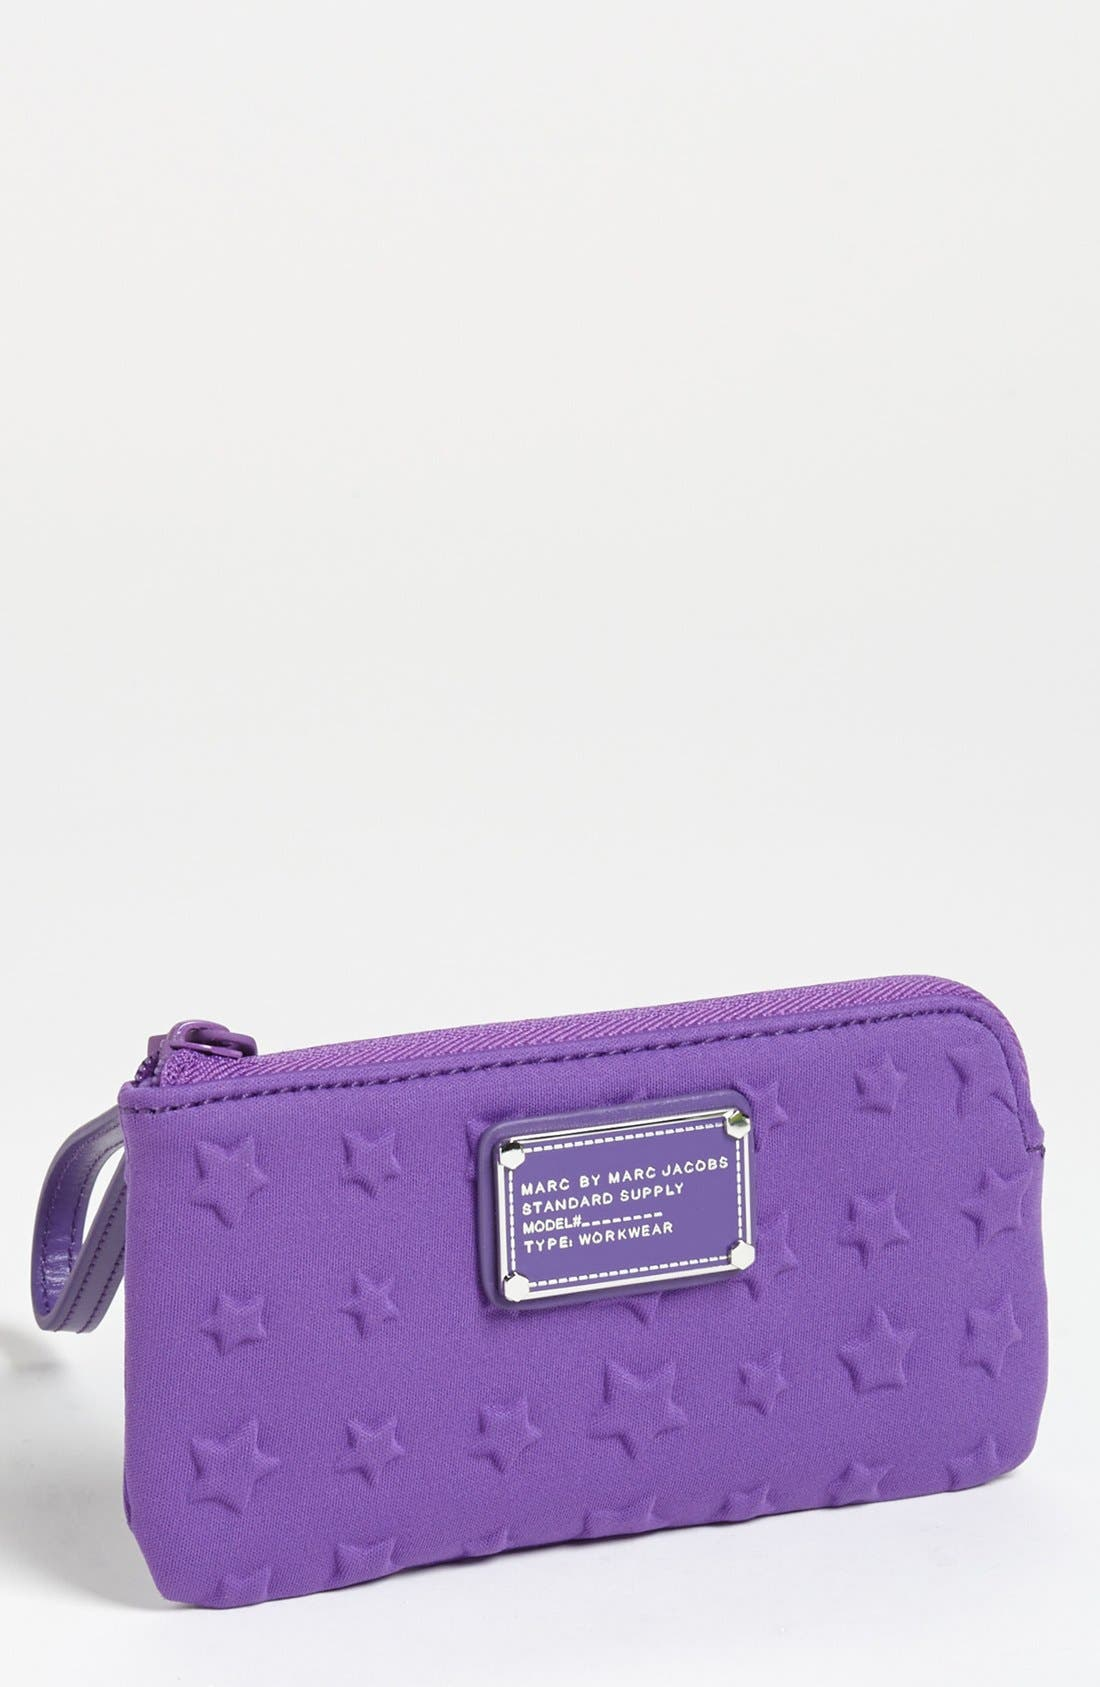 Alternate Image 1 Selected - MARC BY MARC JACOBS 'Reluctant Stars' Phone Wristlet